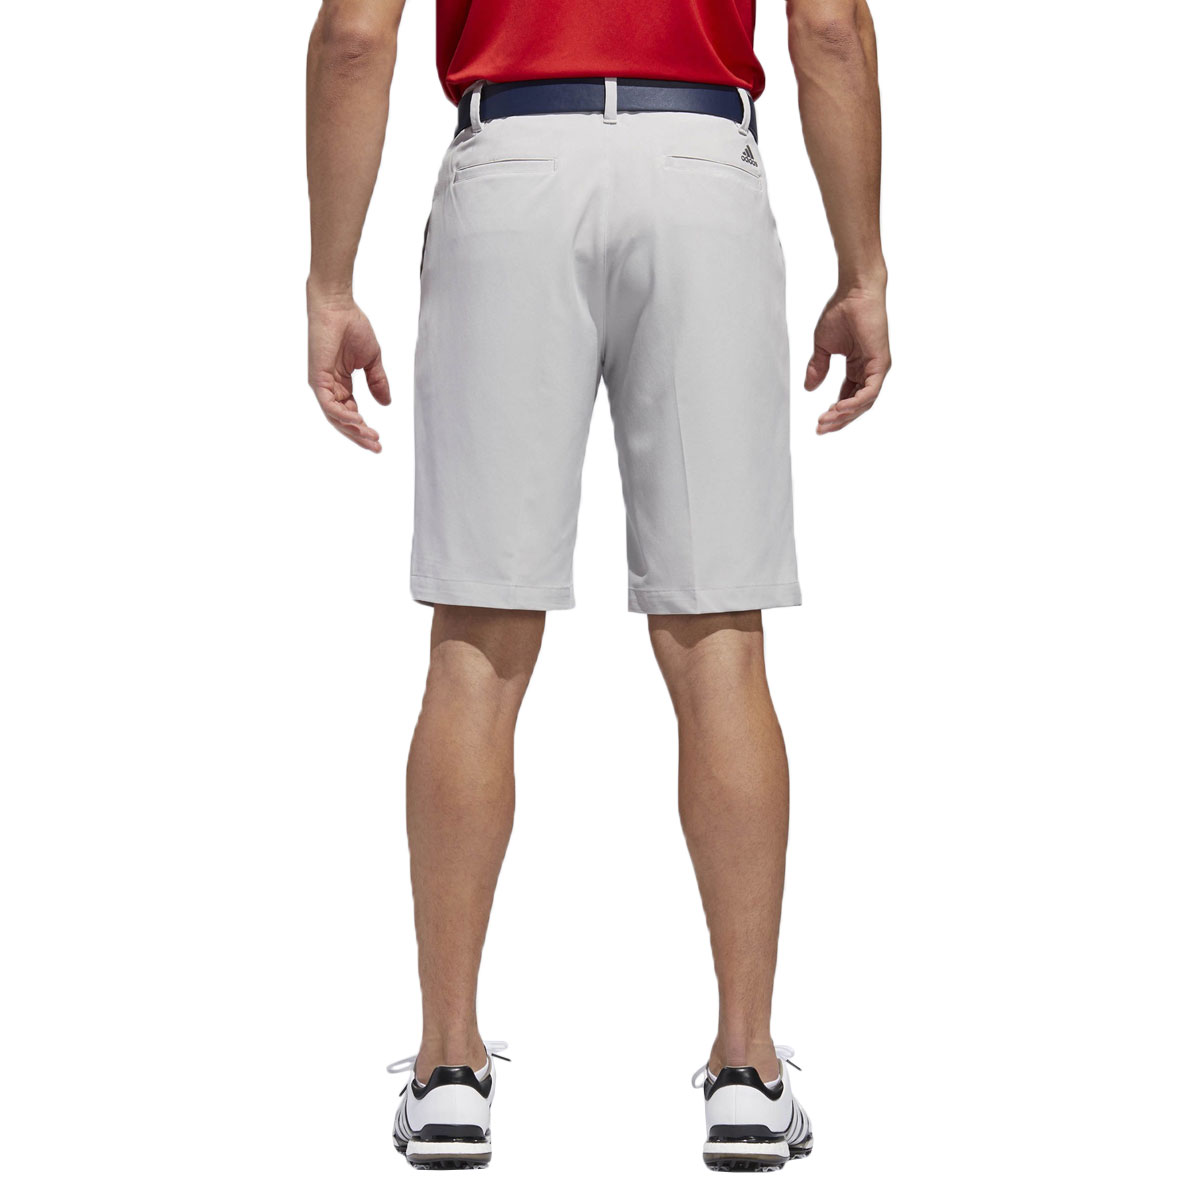 adidas-Golf-Mens-Ultimate365-10-5-034-Inseam-Shorts-47-OFF-RRP thumbnail 5